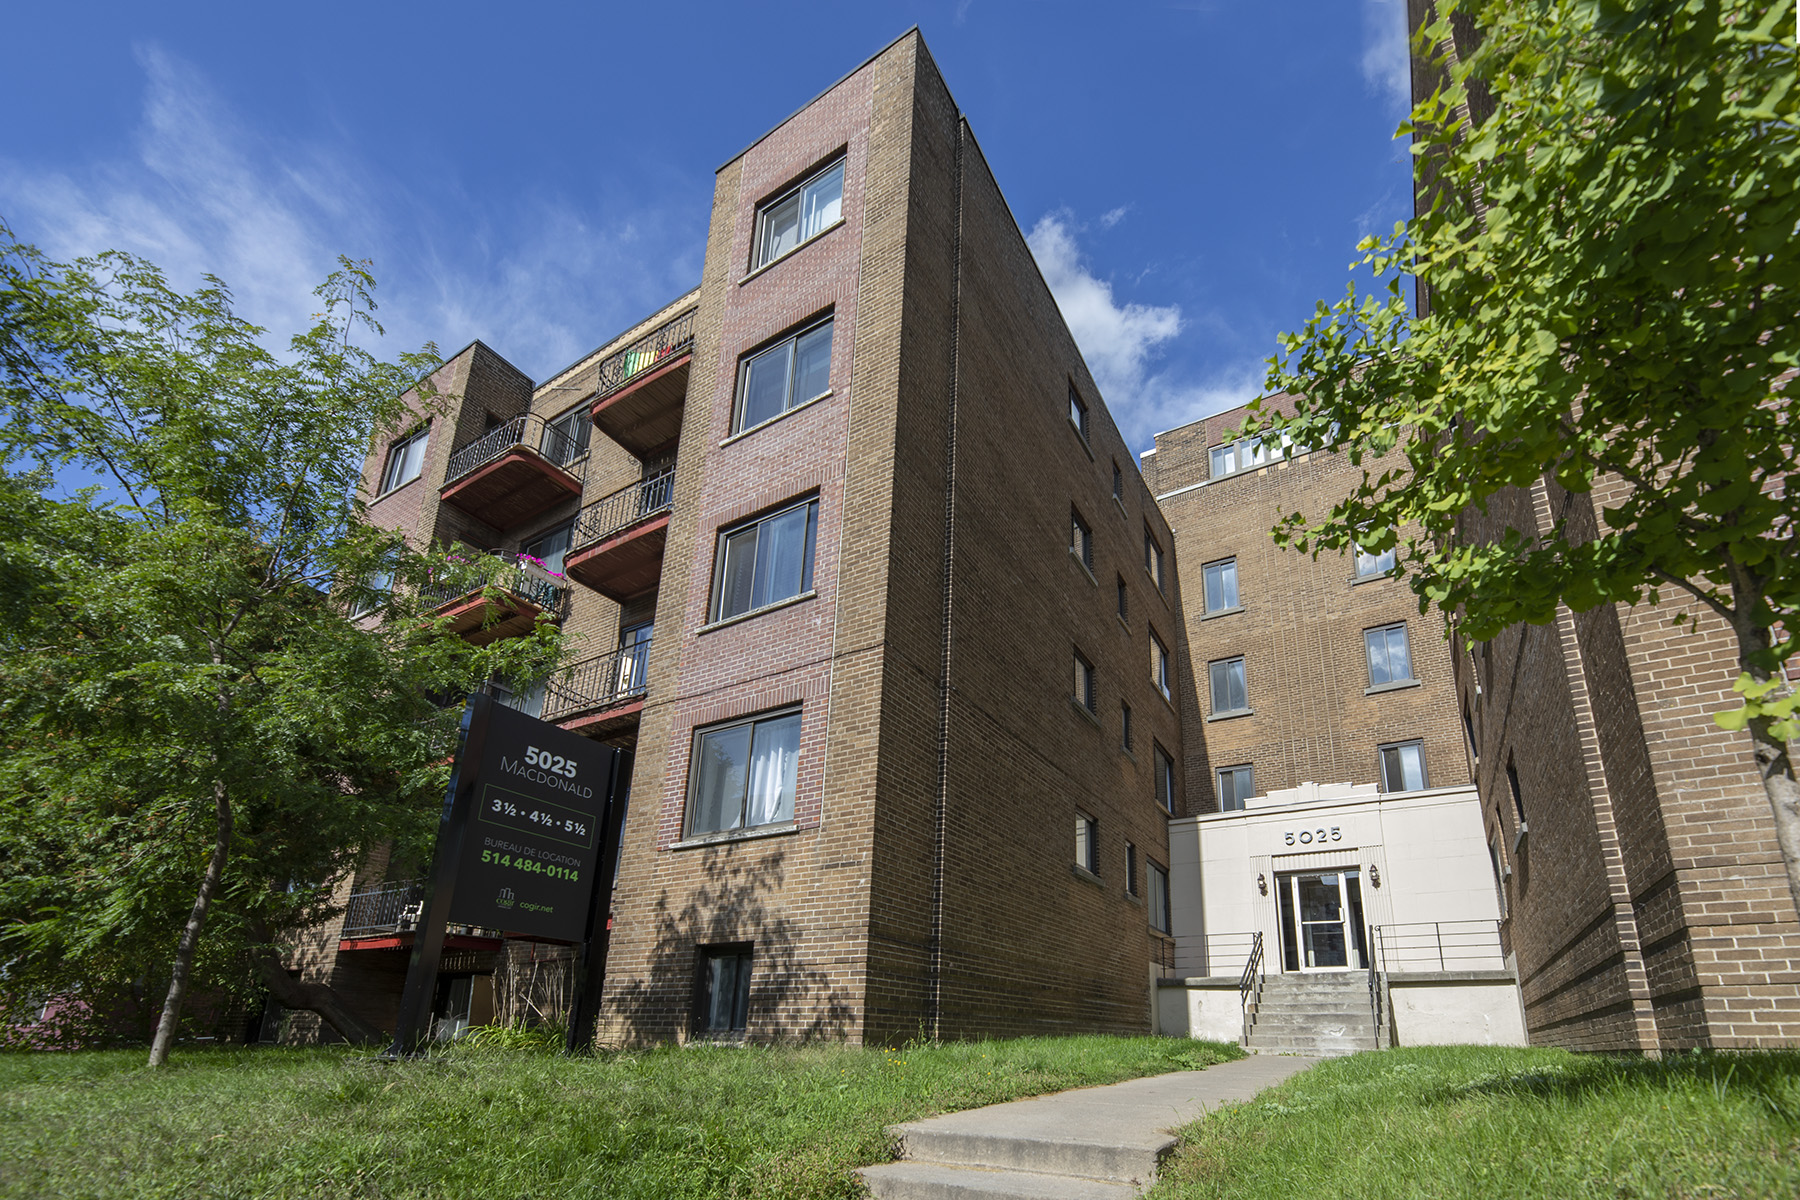 1 bedroom Apartments for rent in Cote-St-Luc at Les immeubles MacDonald - Photo 02 - RentQuebecApartments – L401535